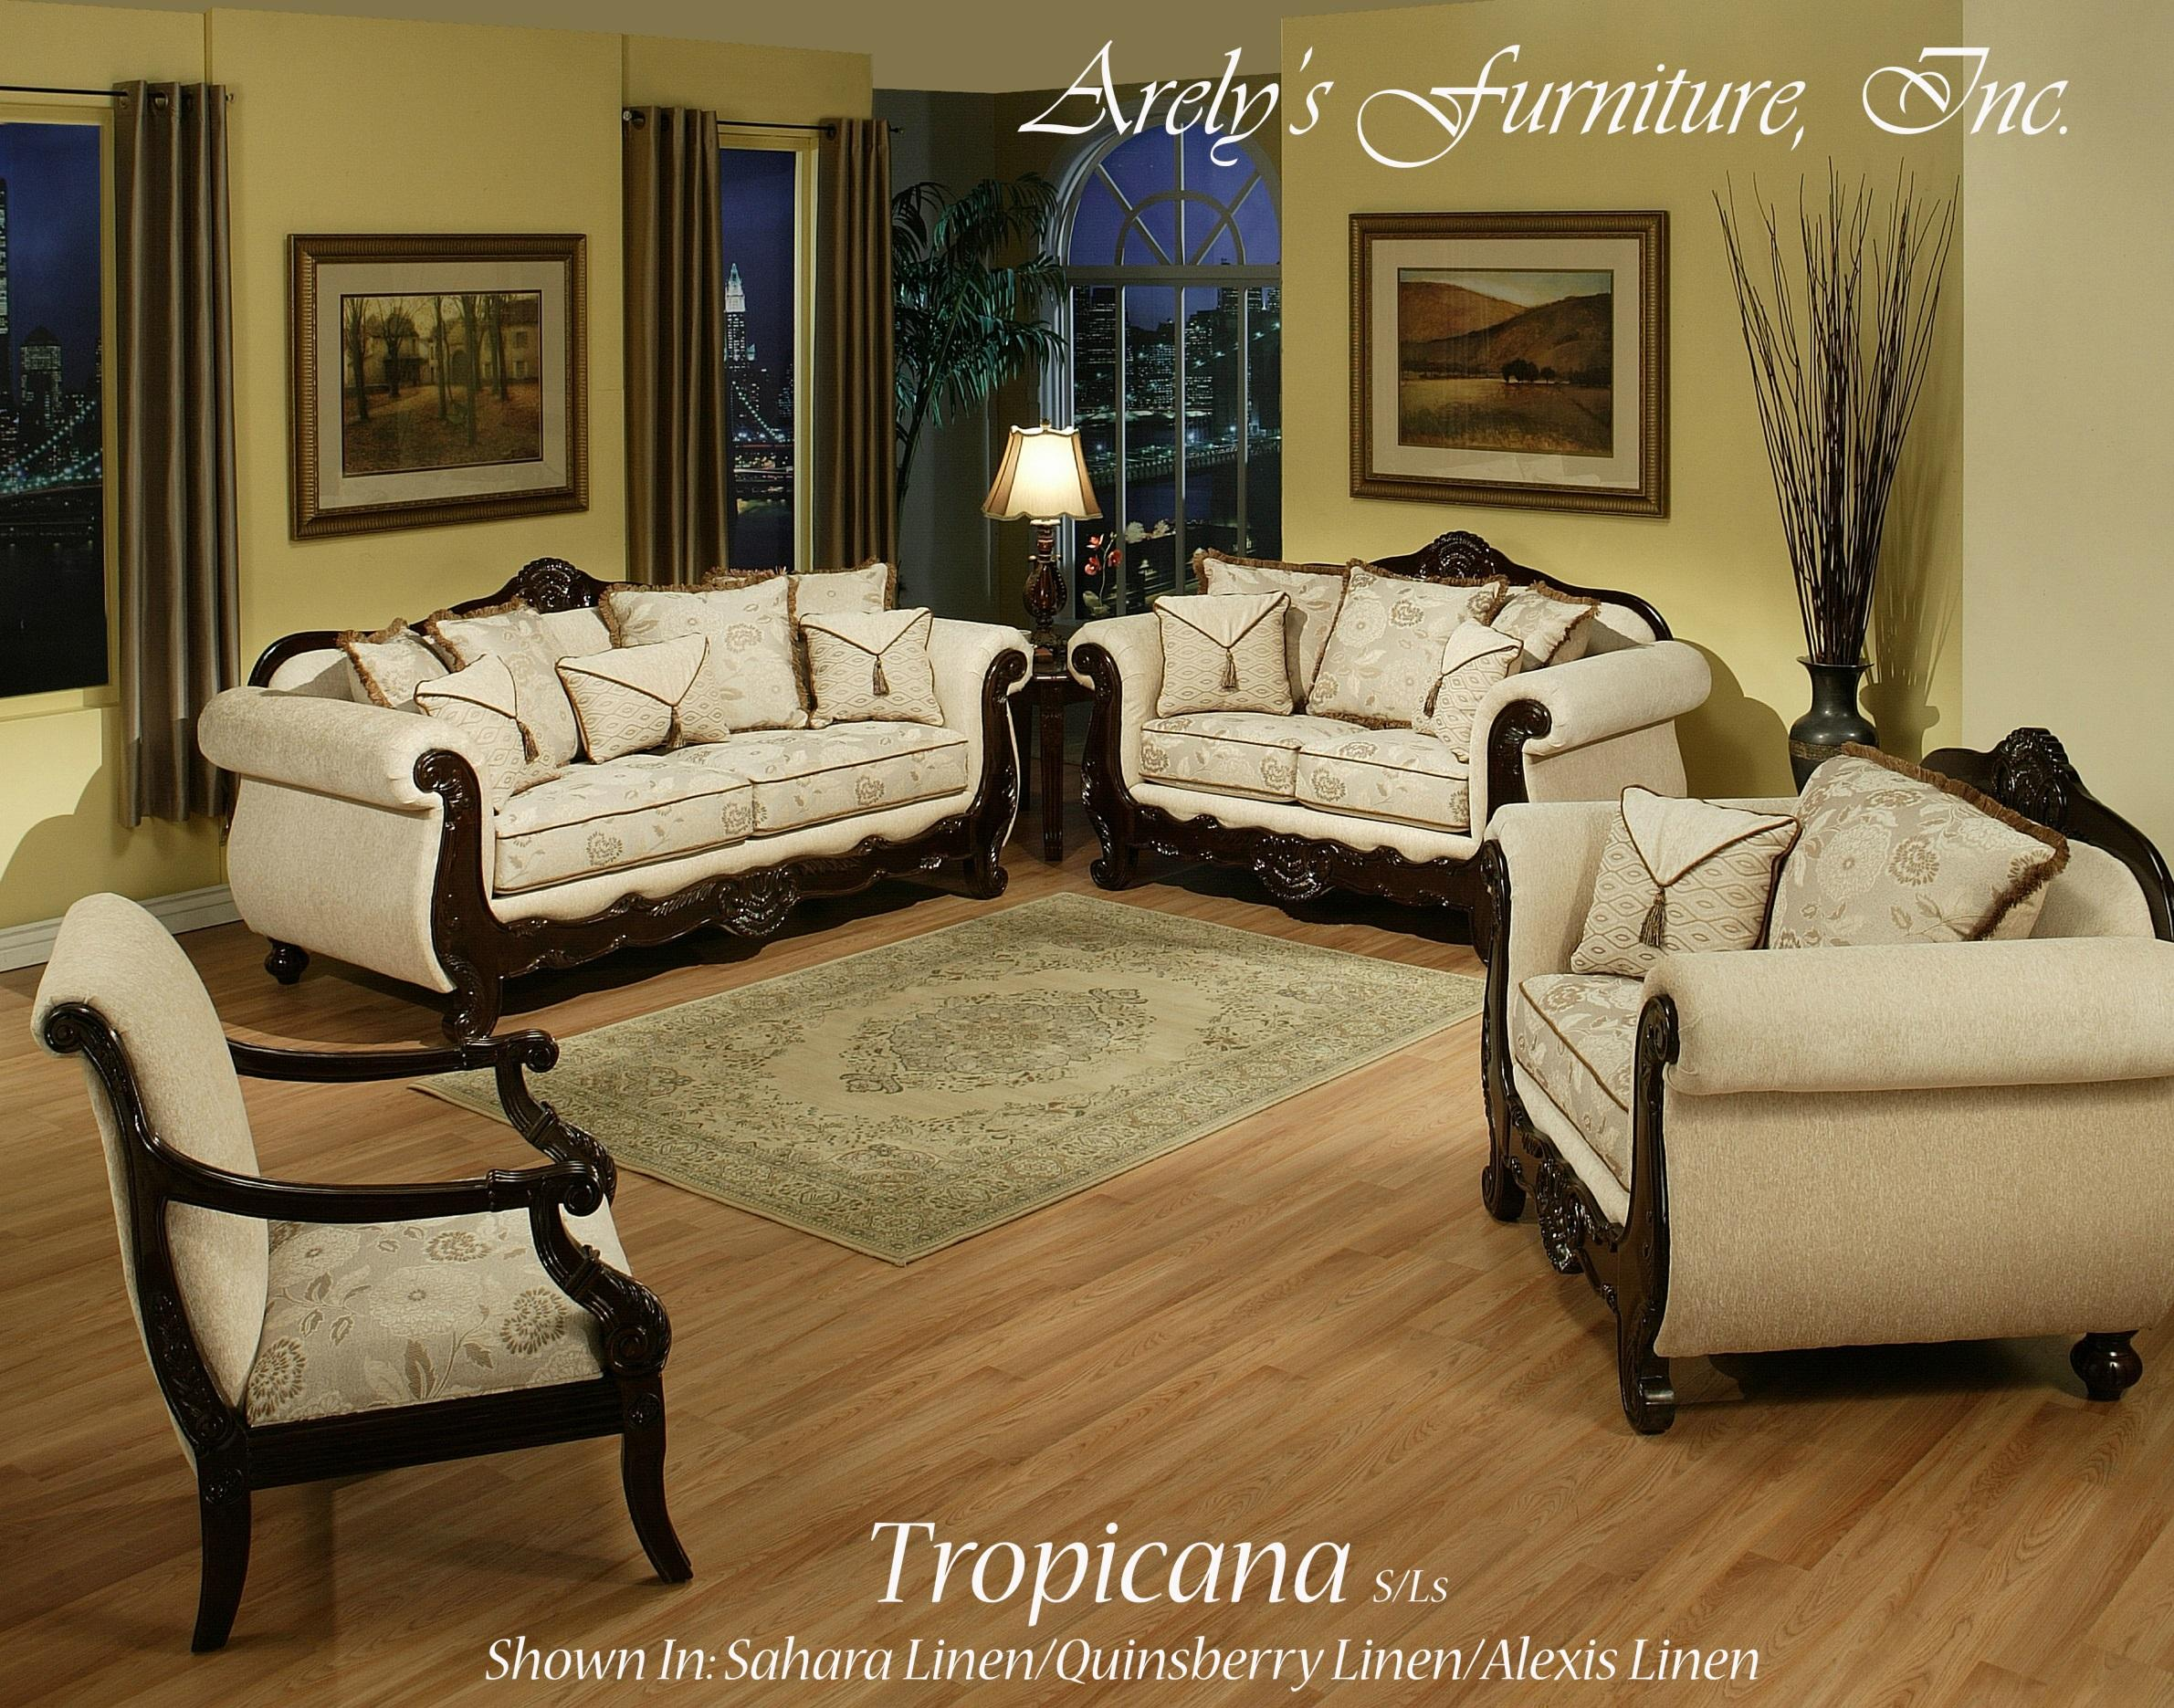 Del Sol Exclusive Tropicana By Arely's Furniture Tropicana Love Seat - Item Number: Tropicana LS